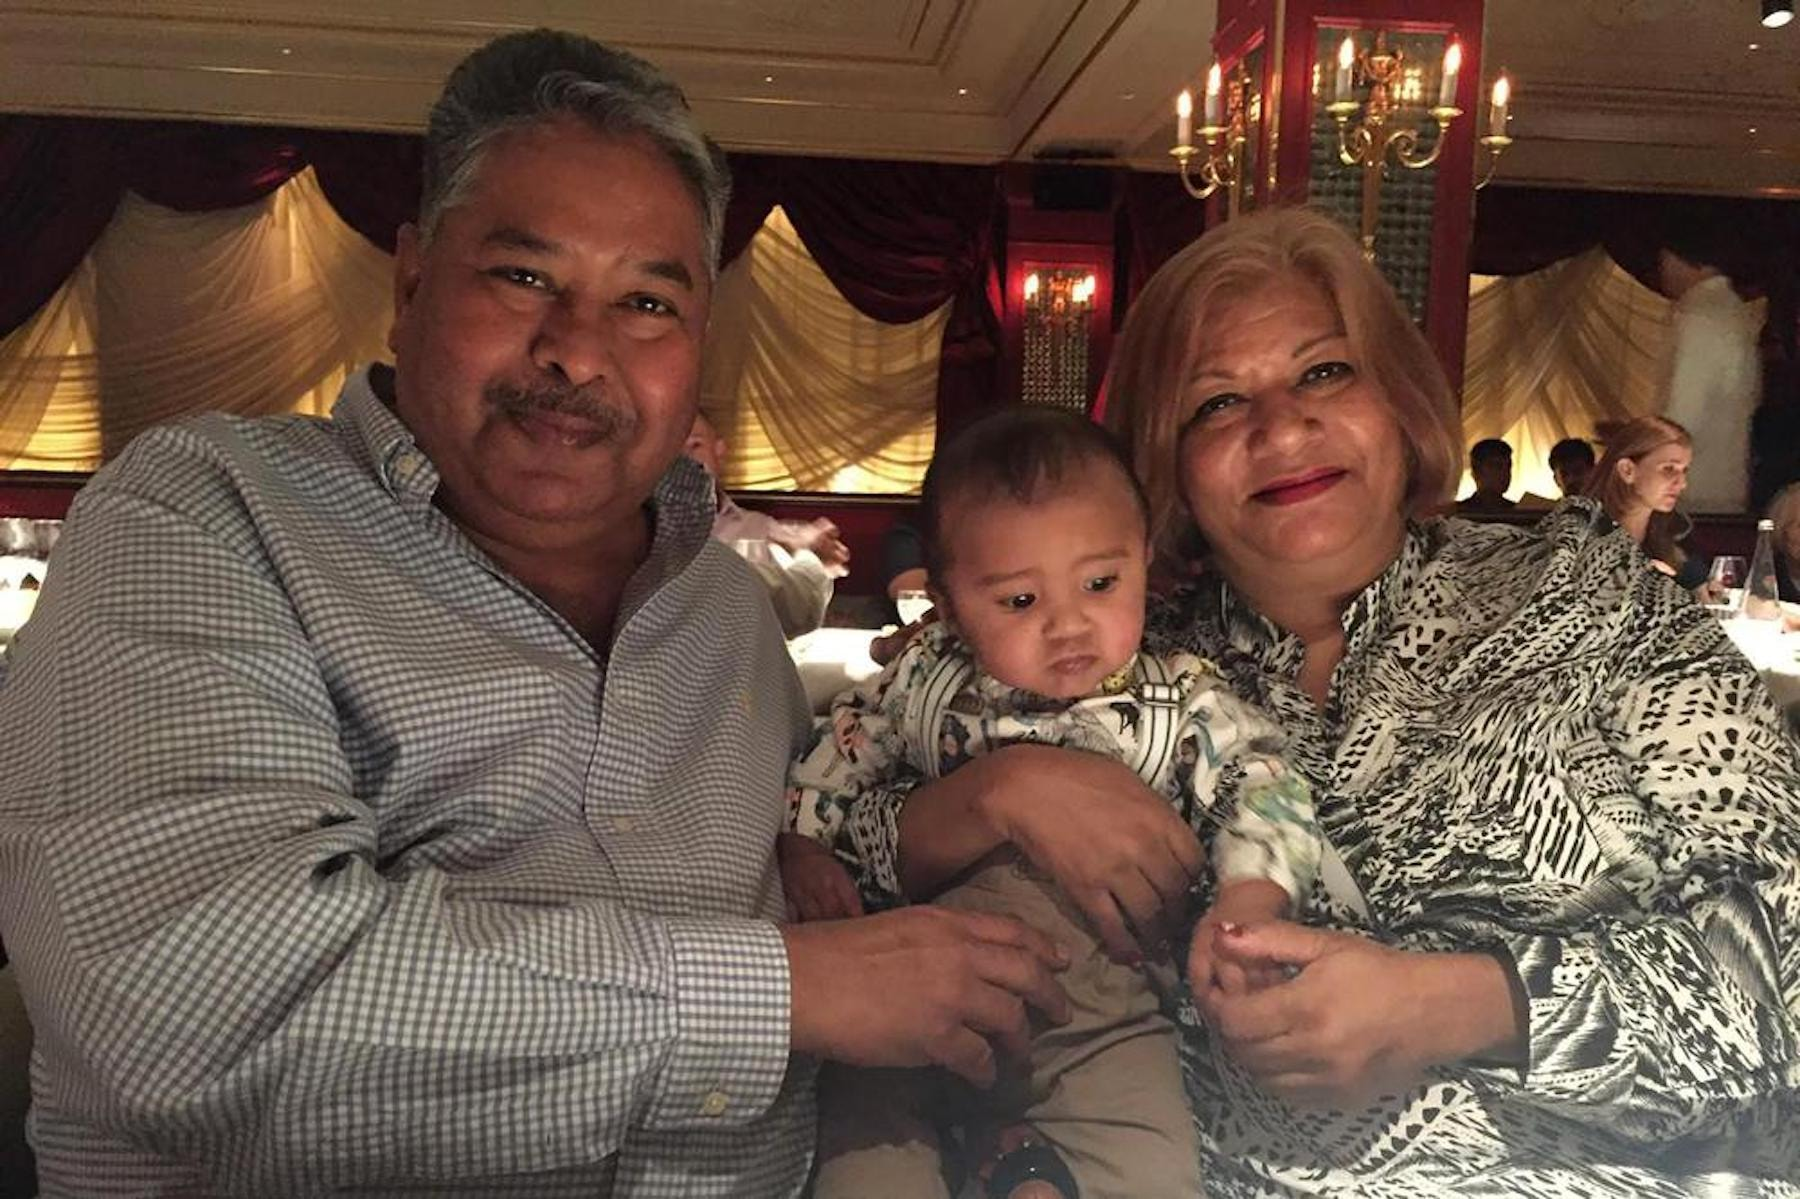 In this undated photo provided by Amrohi family, Yamini Amrohi, right, poses with her grandson and late husband Ashok Amrohi, who died of Covid-19, at a restaurant in London. Ashok, a medical doctor before joining the diplomatic corps, had traveled the world. He'd been ambassador to Algeria, Mozambique and Brunei, and had retired to Gurgaon, a city just outside the capital, and a life of golf and piano lessons. — Amrohi family via AP